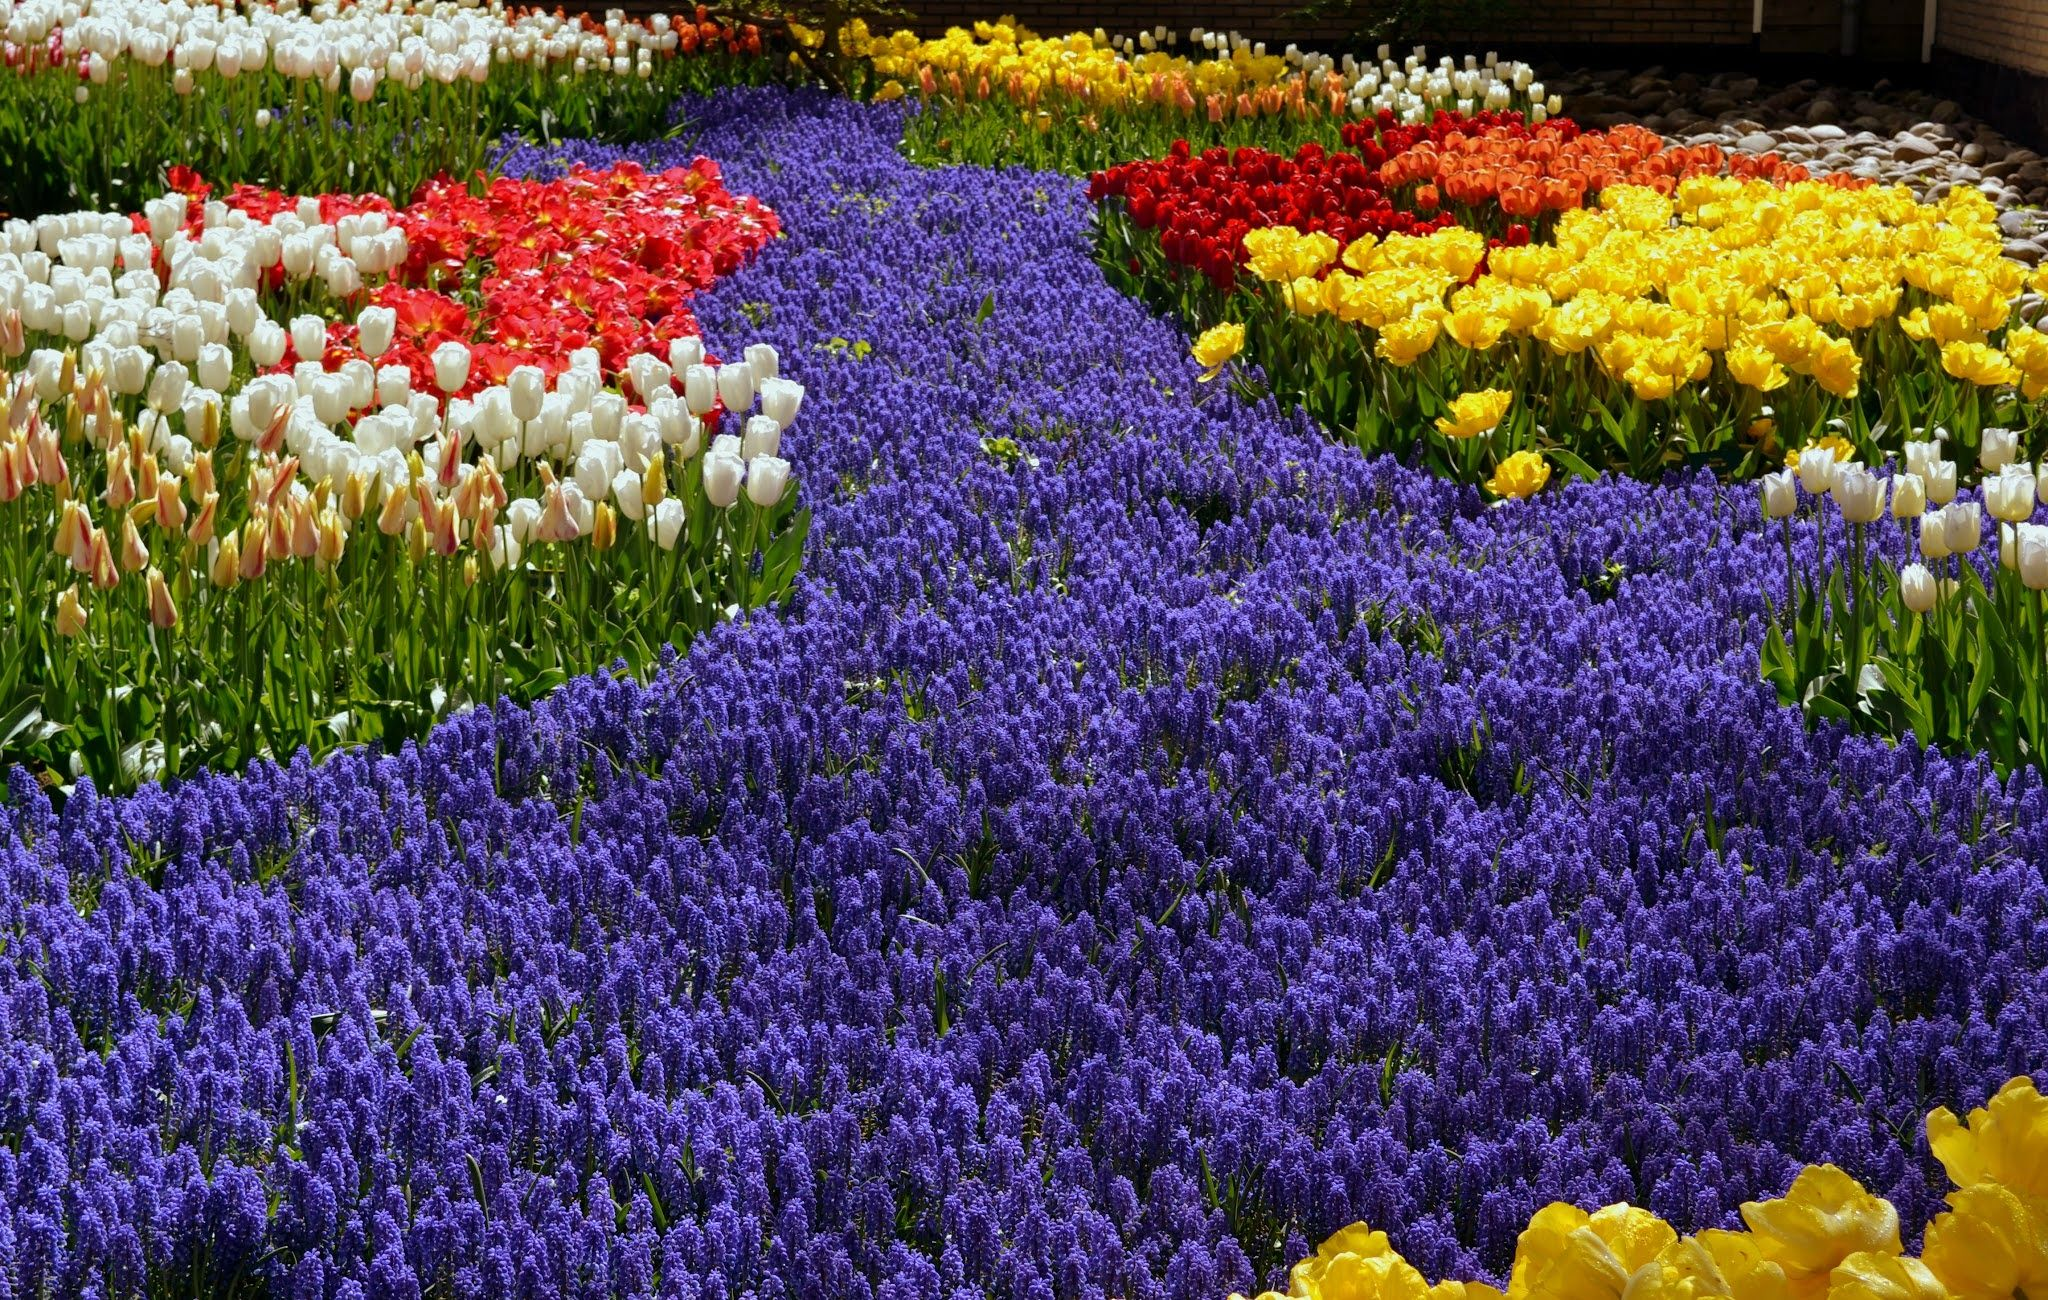 Sea of flowers beauty of nature seen in different colors of flowers sea of flowers beauty of nature seen in different colors of flowers izmirmasajfo Images